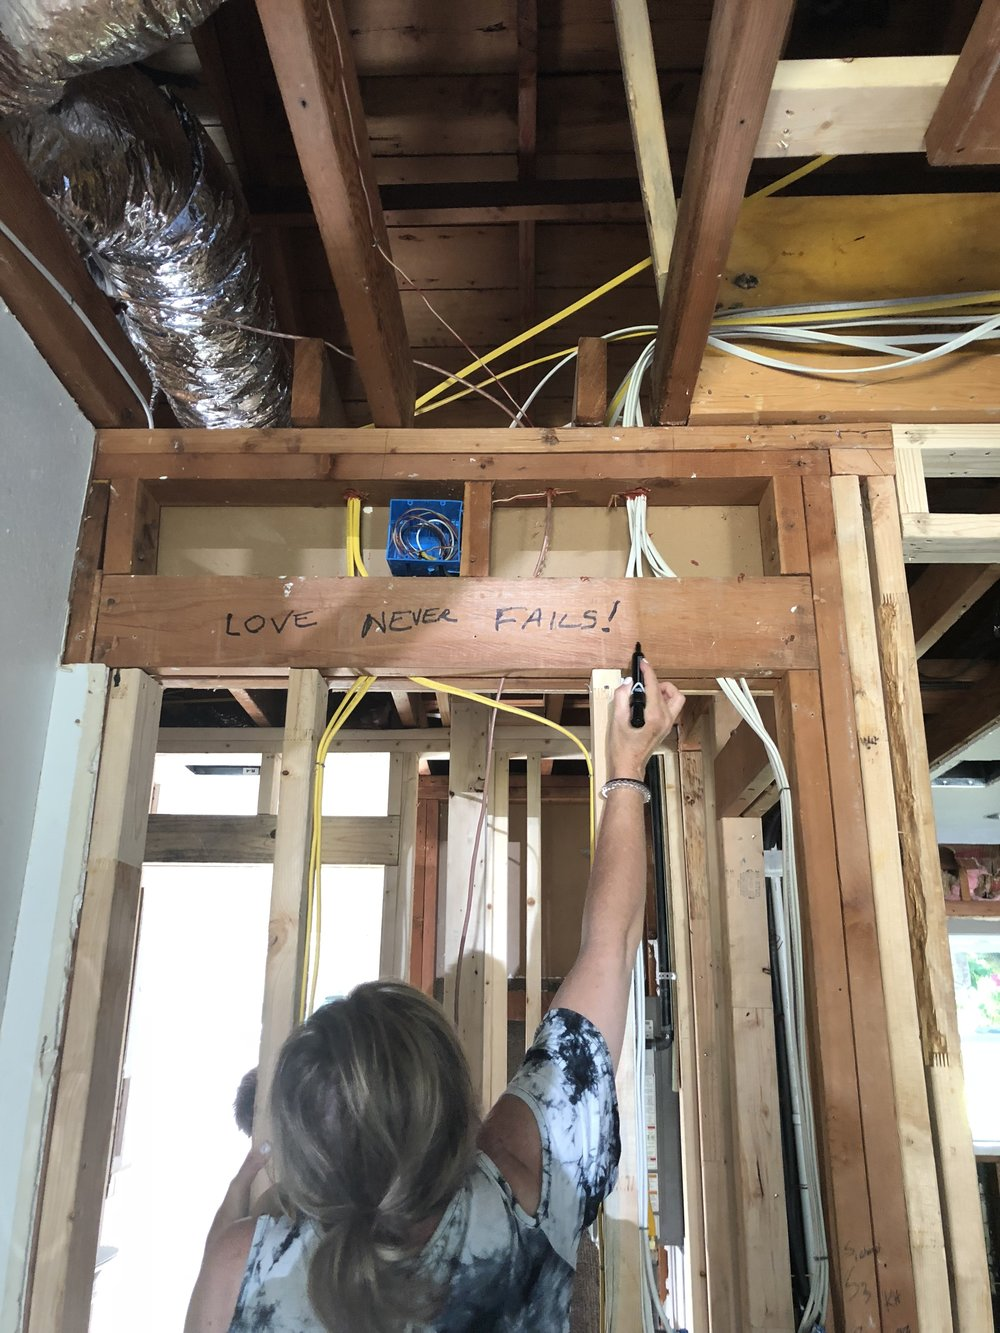 Bible Verses to Bless Your Home during Renovation or New Build - Framing - Bible Verses for Home 8.JPG